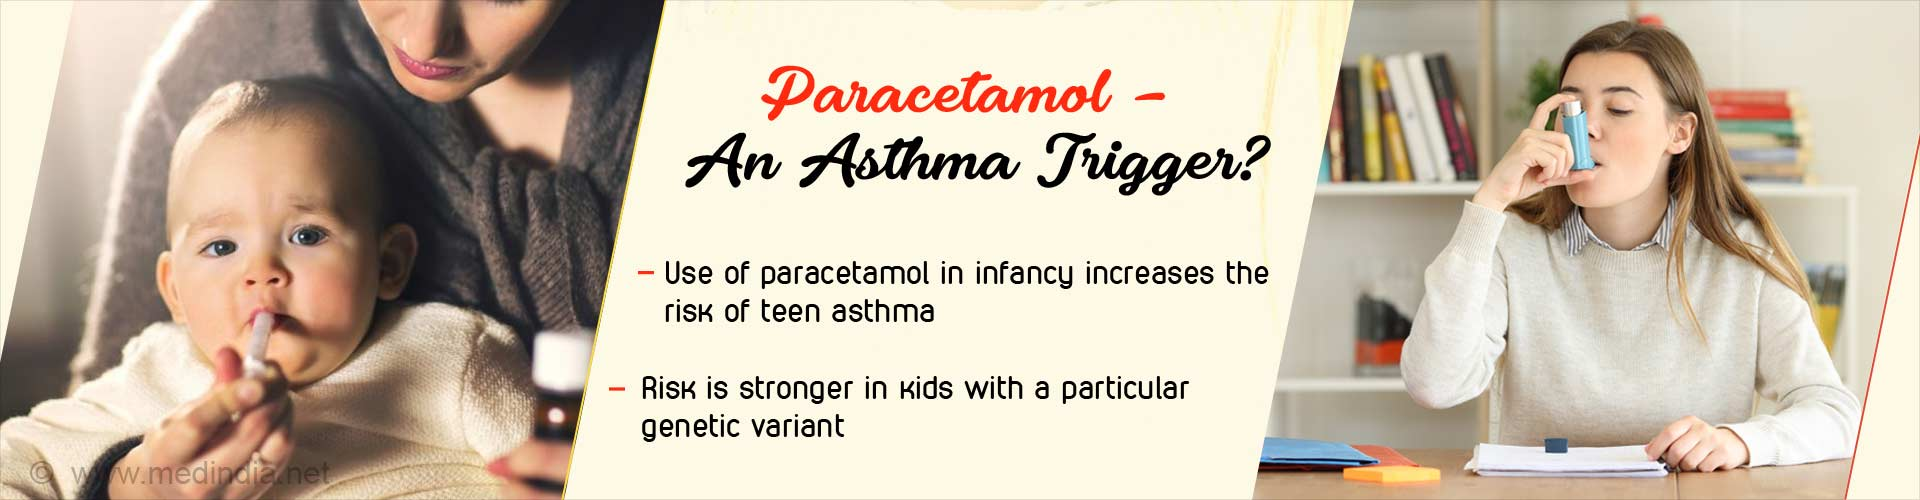 Asthma in Teenagers could be a Result of Paracetamol Use in Infancy